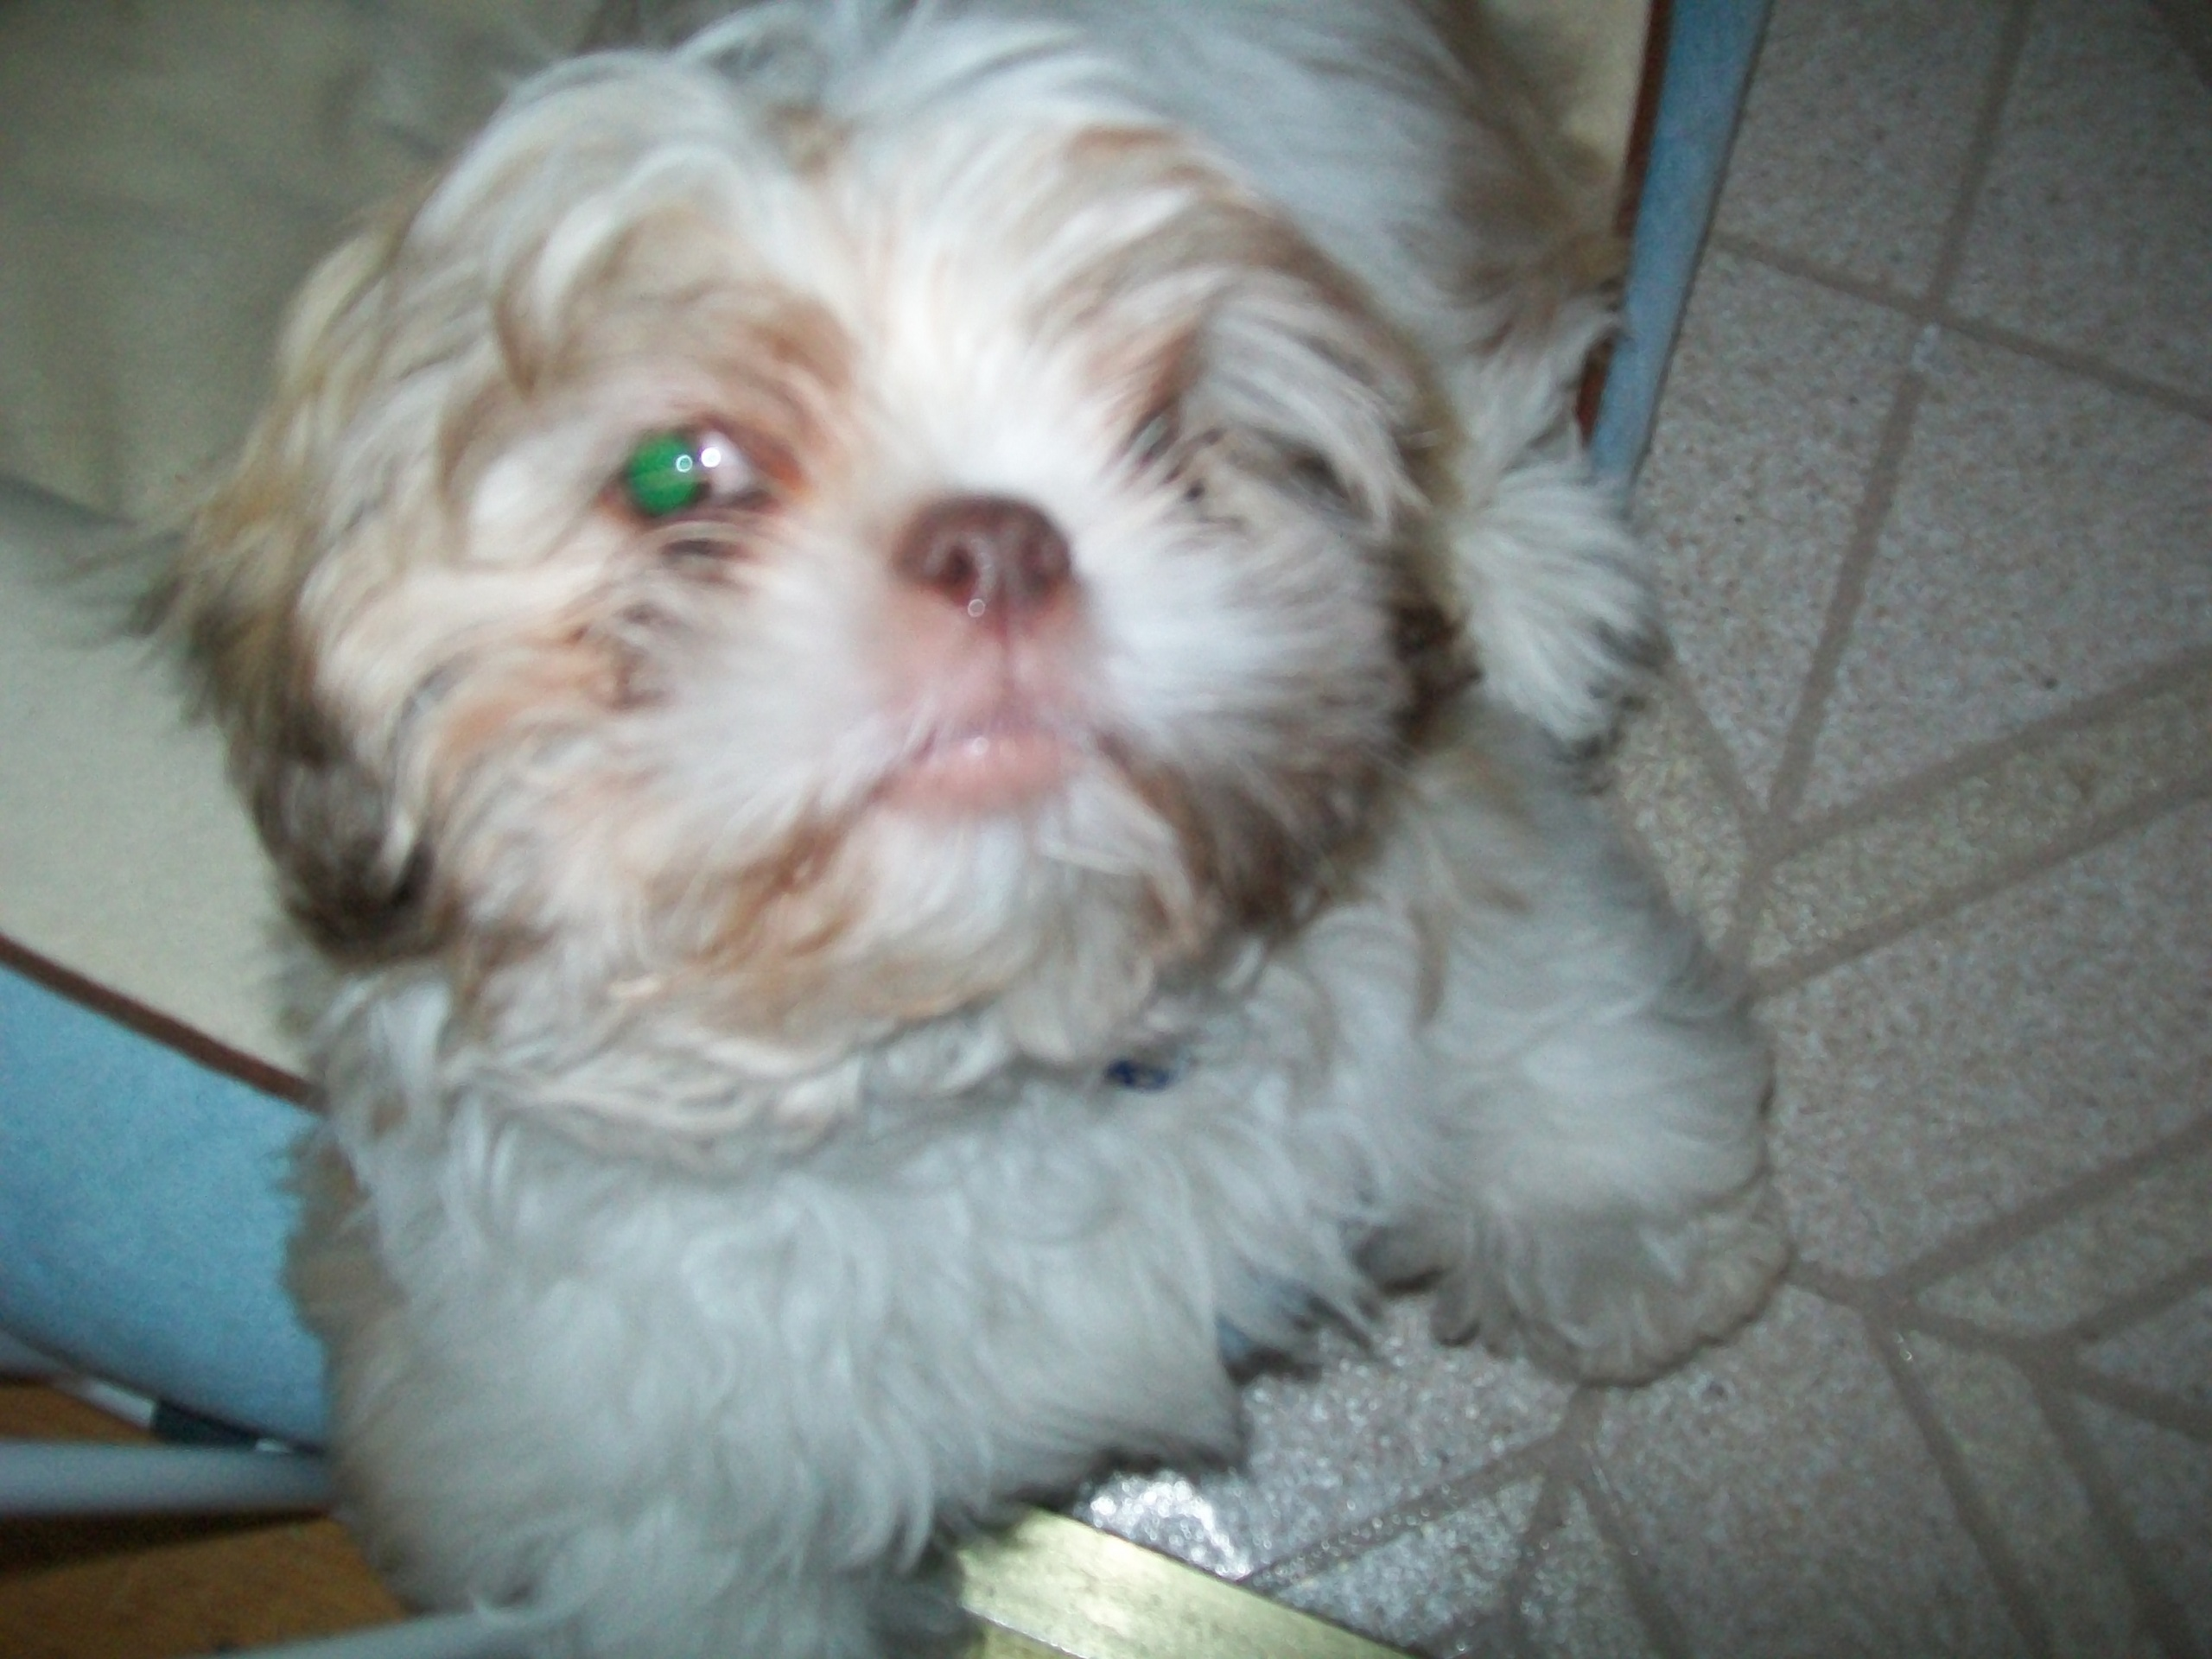 Shiz Shu Dog http://www.fanpop.com/clubs/puppies/images/31317780/title/dusty-shih-tzu-puppy-photo